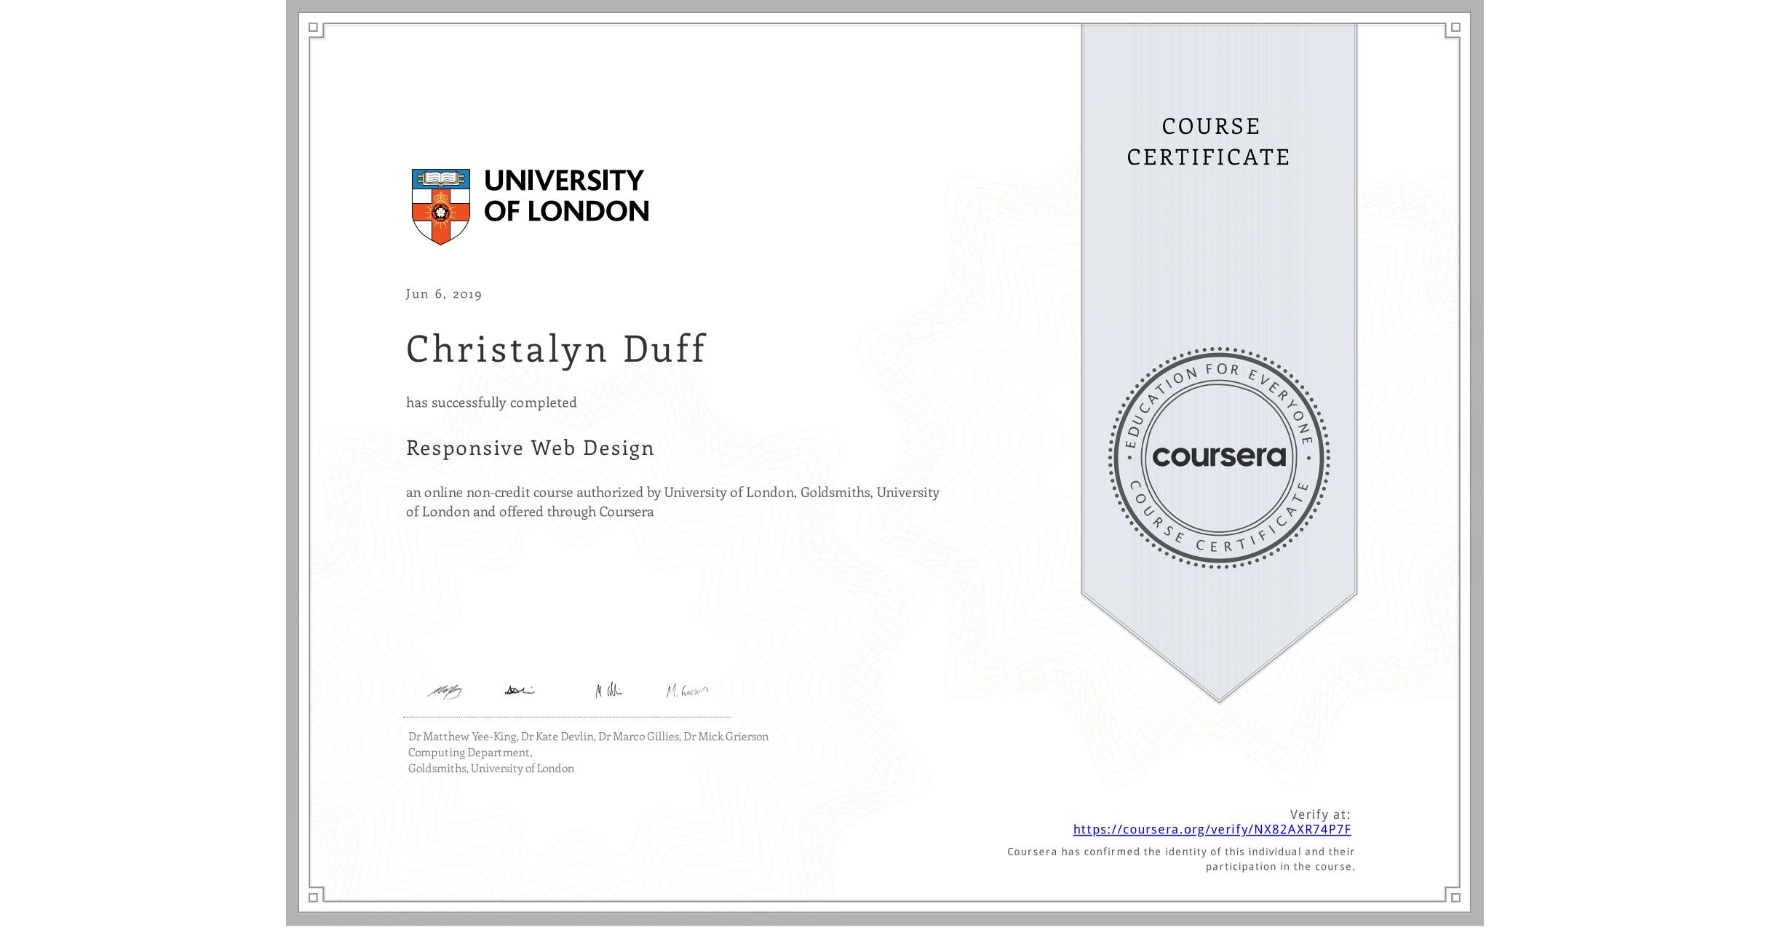 View certificate for Christalyn Duff, Responsive Web Design, an online non-credit course authorized by University of London & Goldsmiths, University of London and offered through Coursera